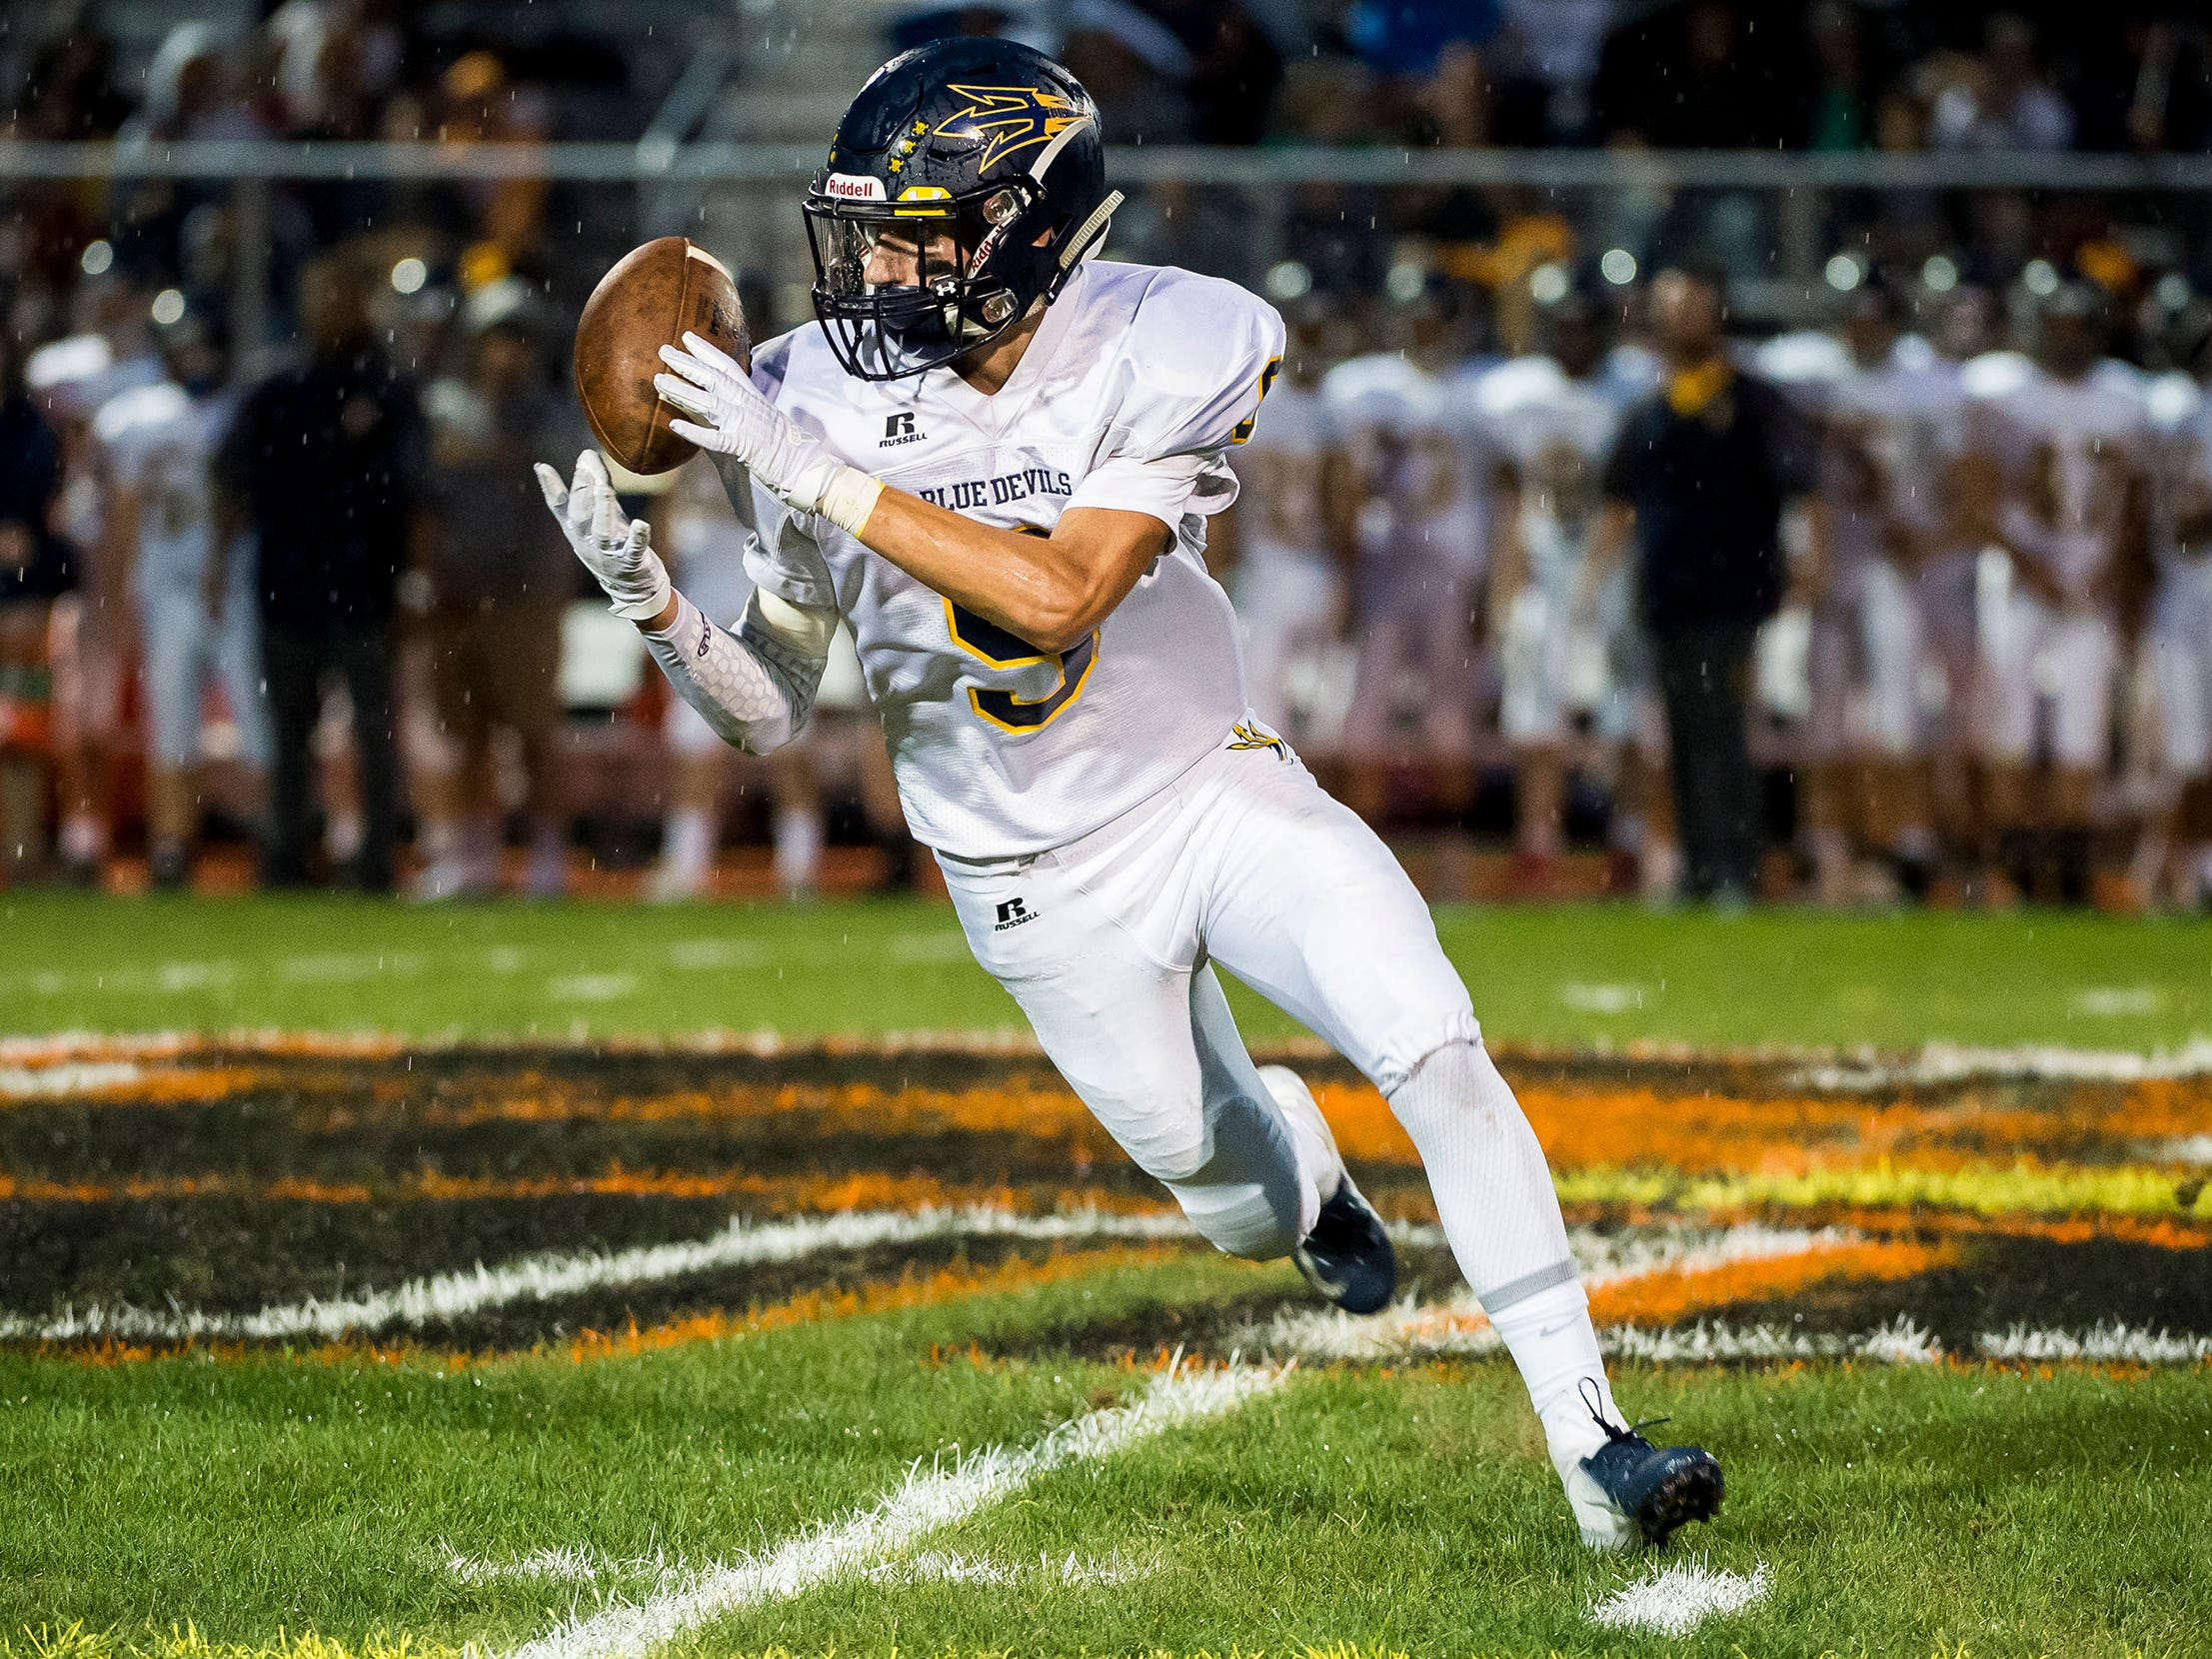 Greencastle-Antrim's Gunnar Valentine bobbles the ball during a kick return against Hanover on Friday, September 7, 2018.